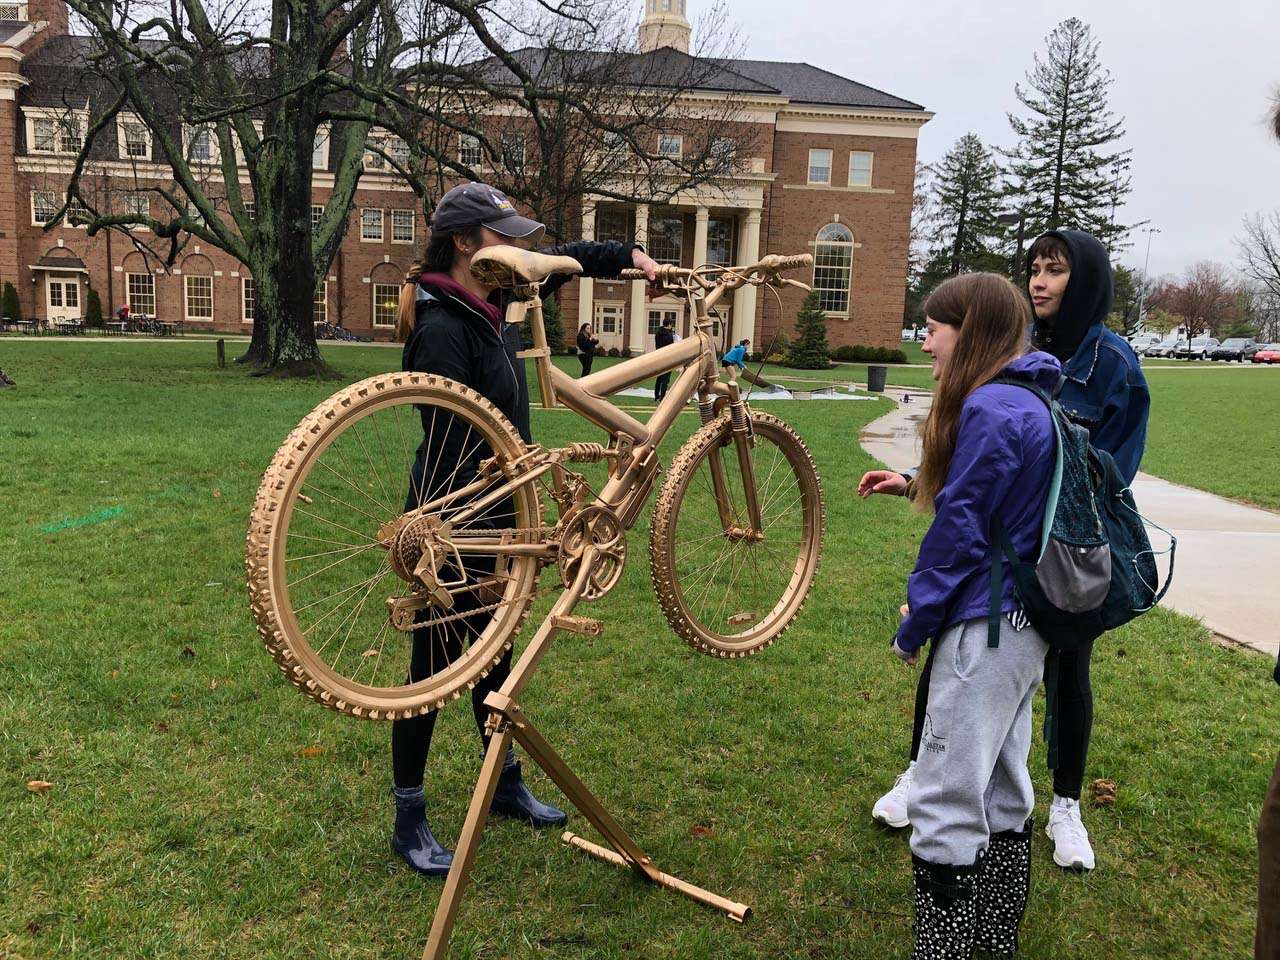 Creativity City preparations with gold-painted bike